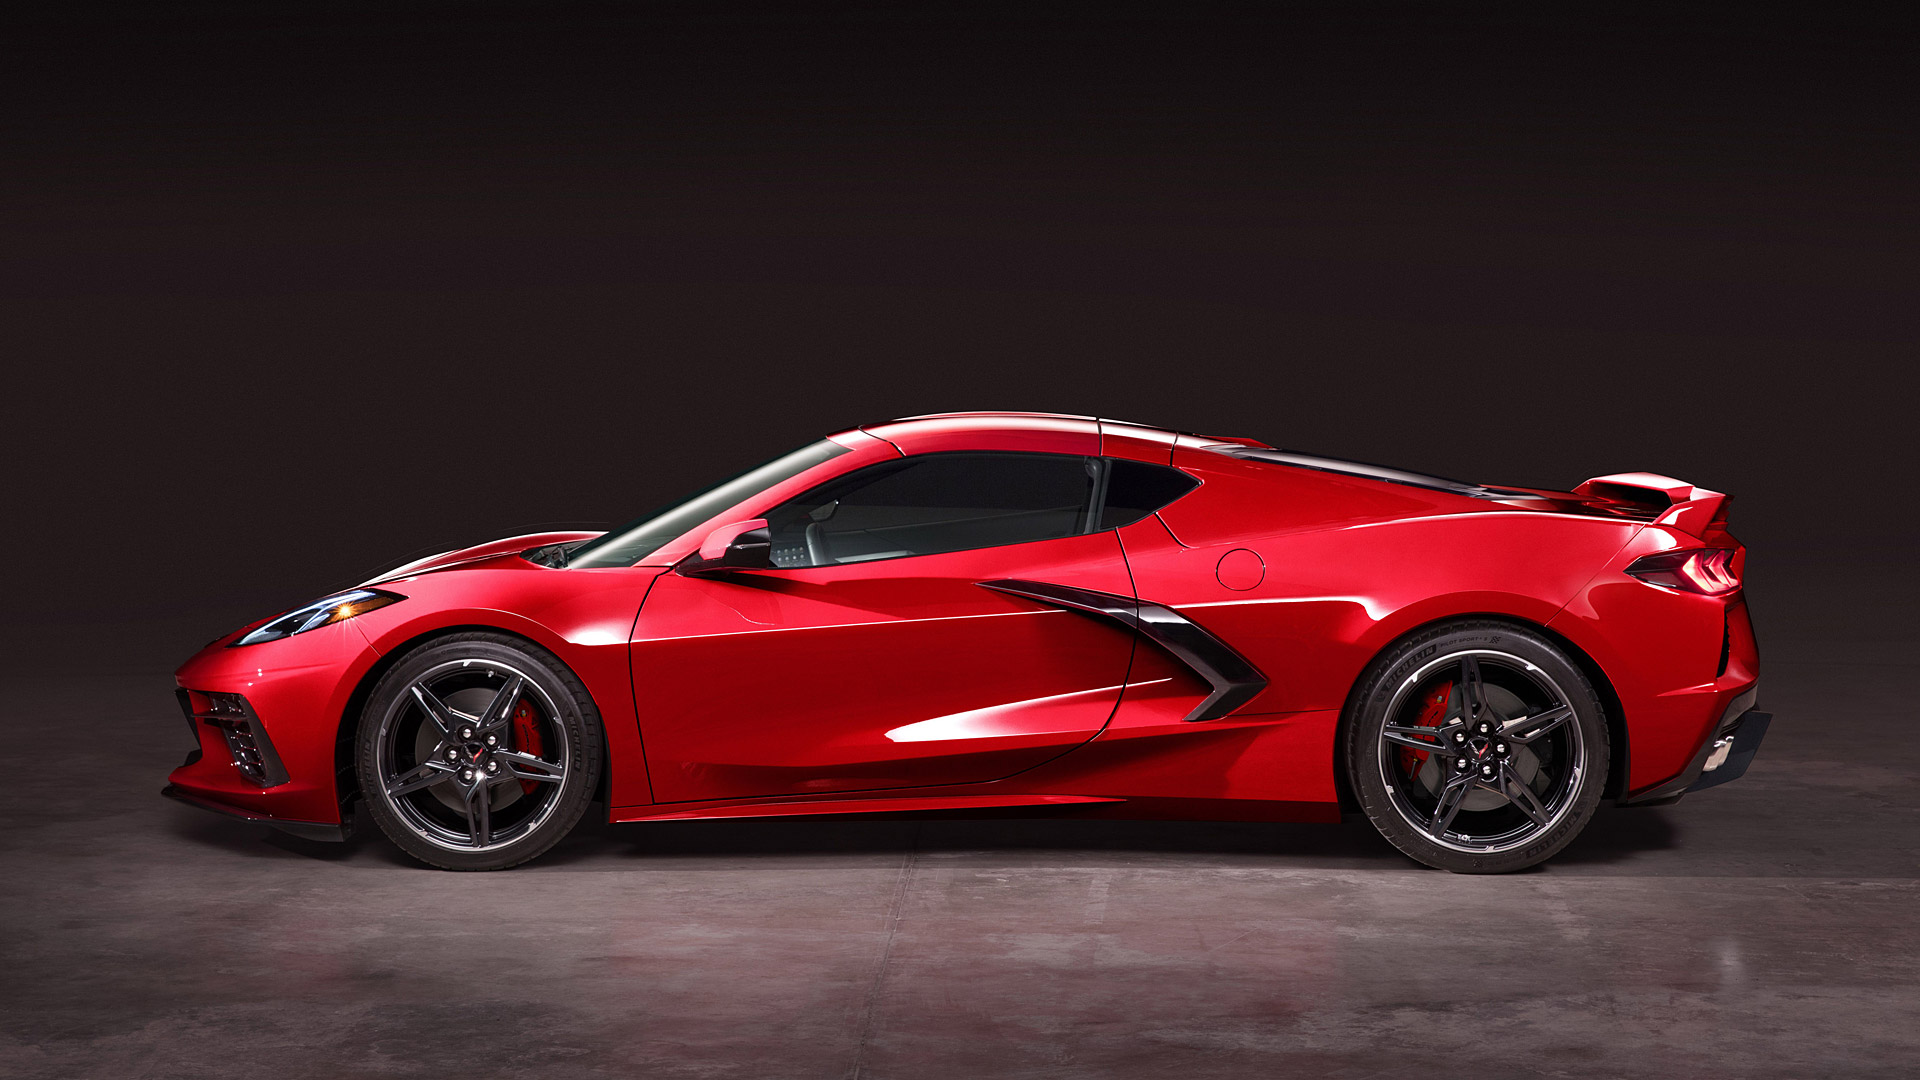 2020 Chevrolet Corvette Stingray Wallpapers Specs Videos   4K 1920x1080